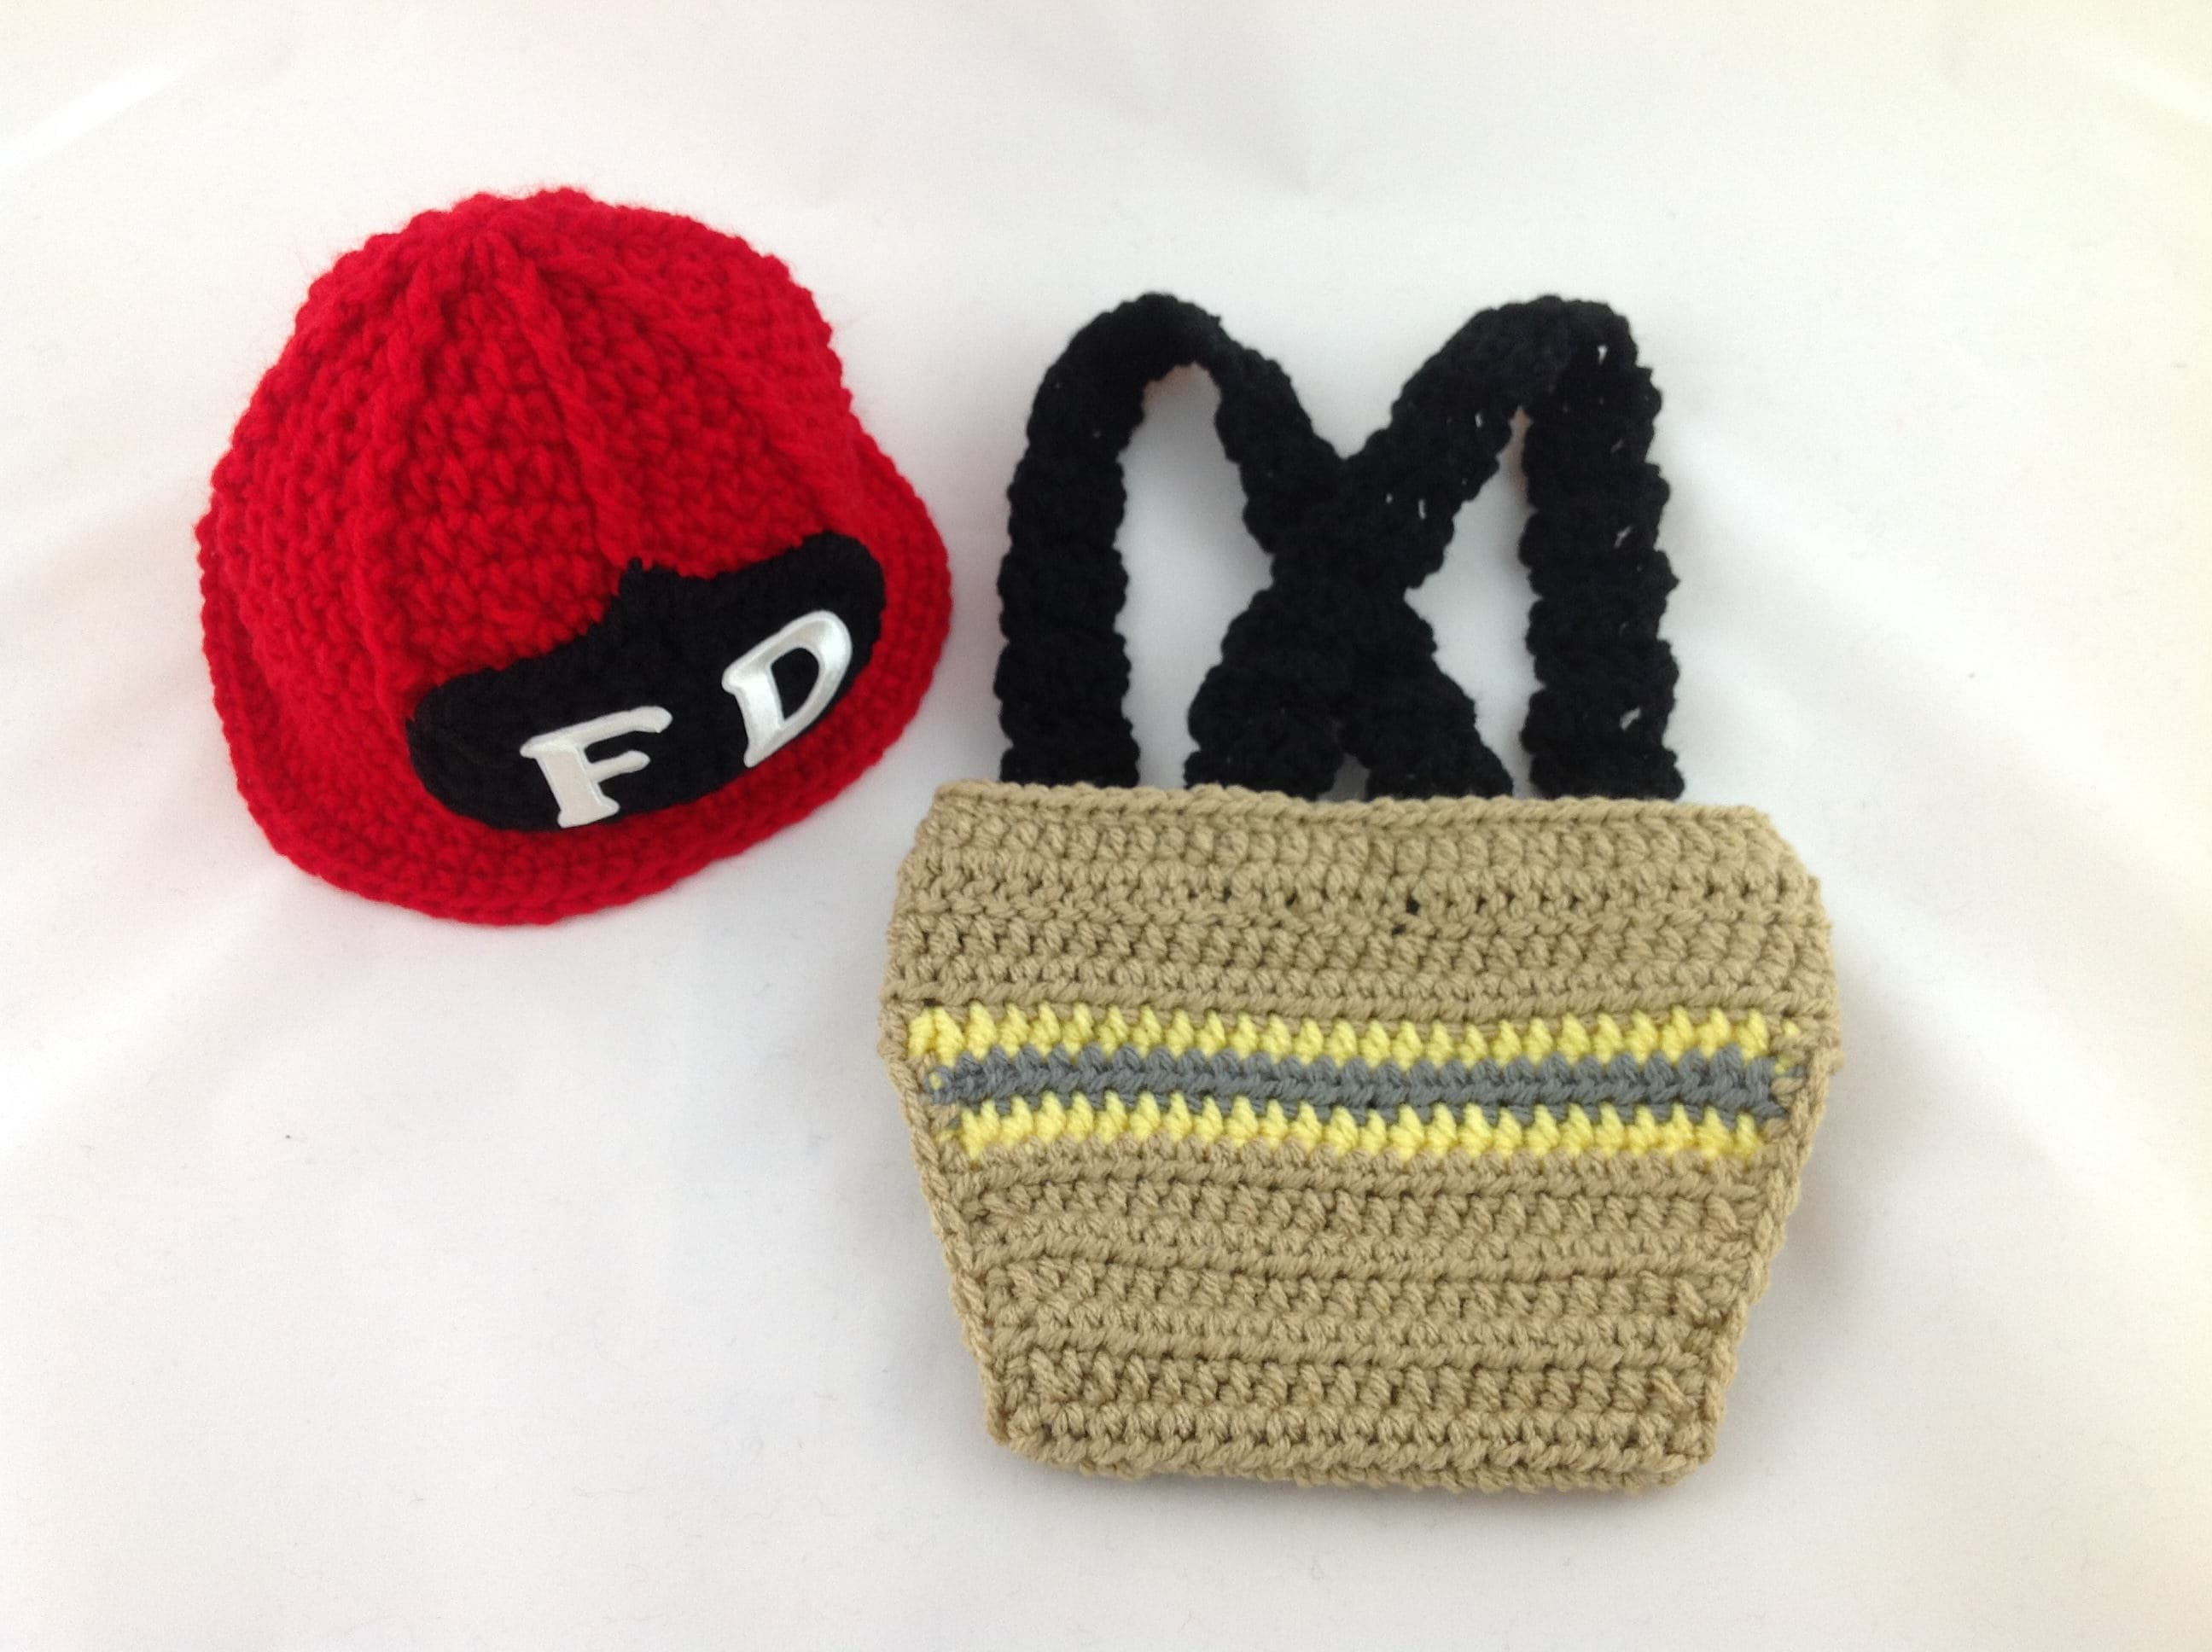 Recycled bunker gear bags - Baby Firefighter Outfit Newborn Firefighter Firefighter Baby Firefighter Baby Boy Firefighter Baby